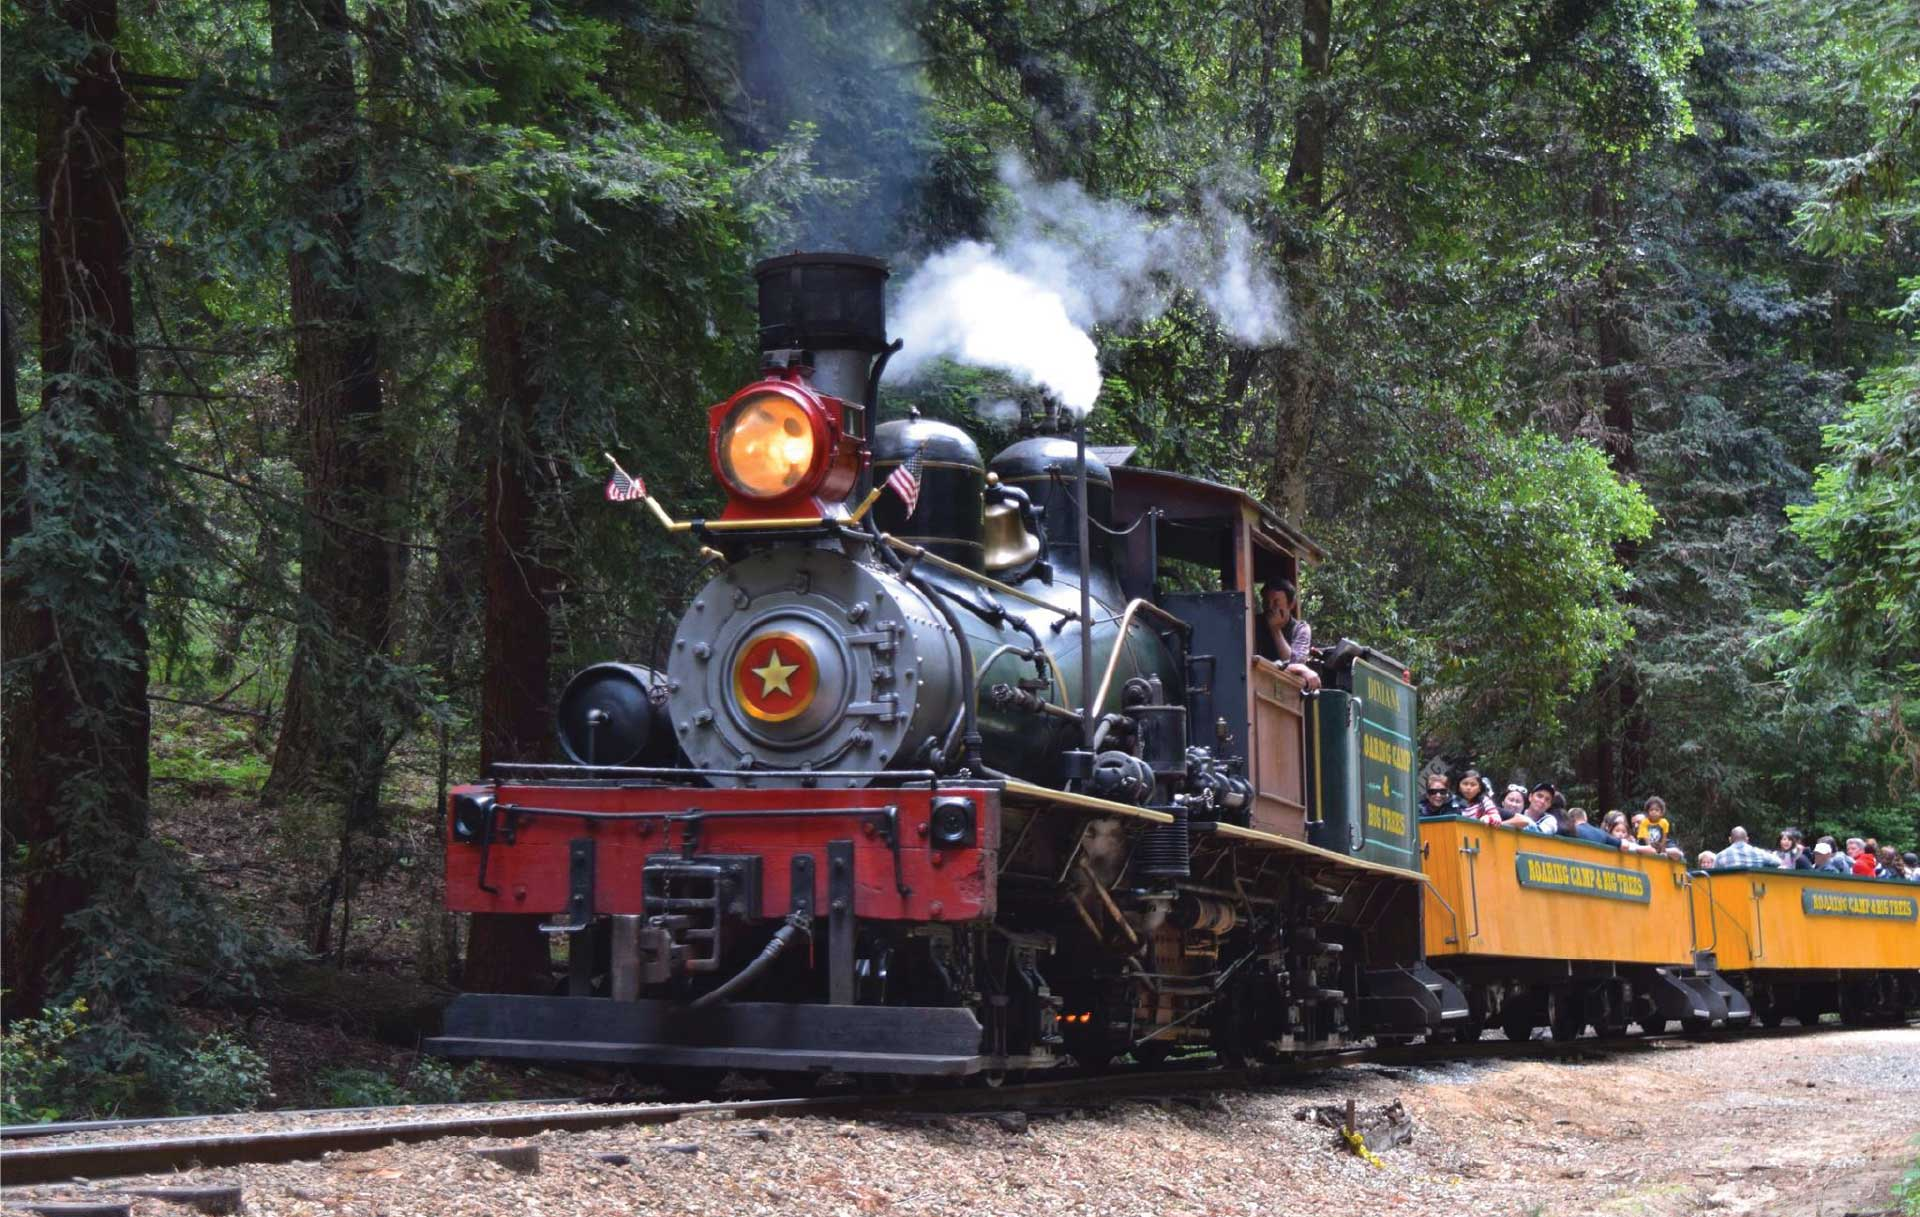 Home - Roaring Camp Railroads